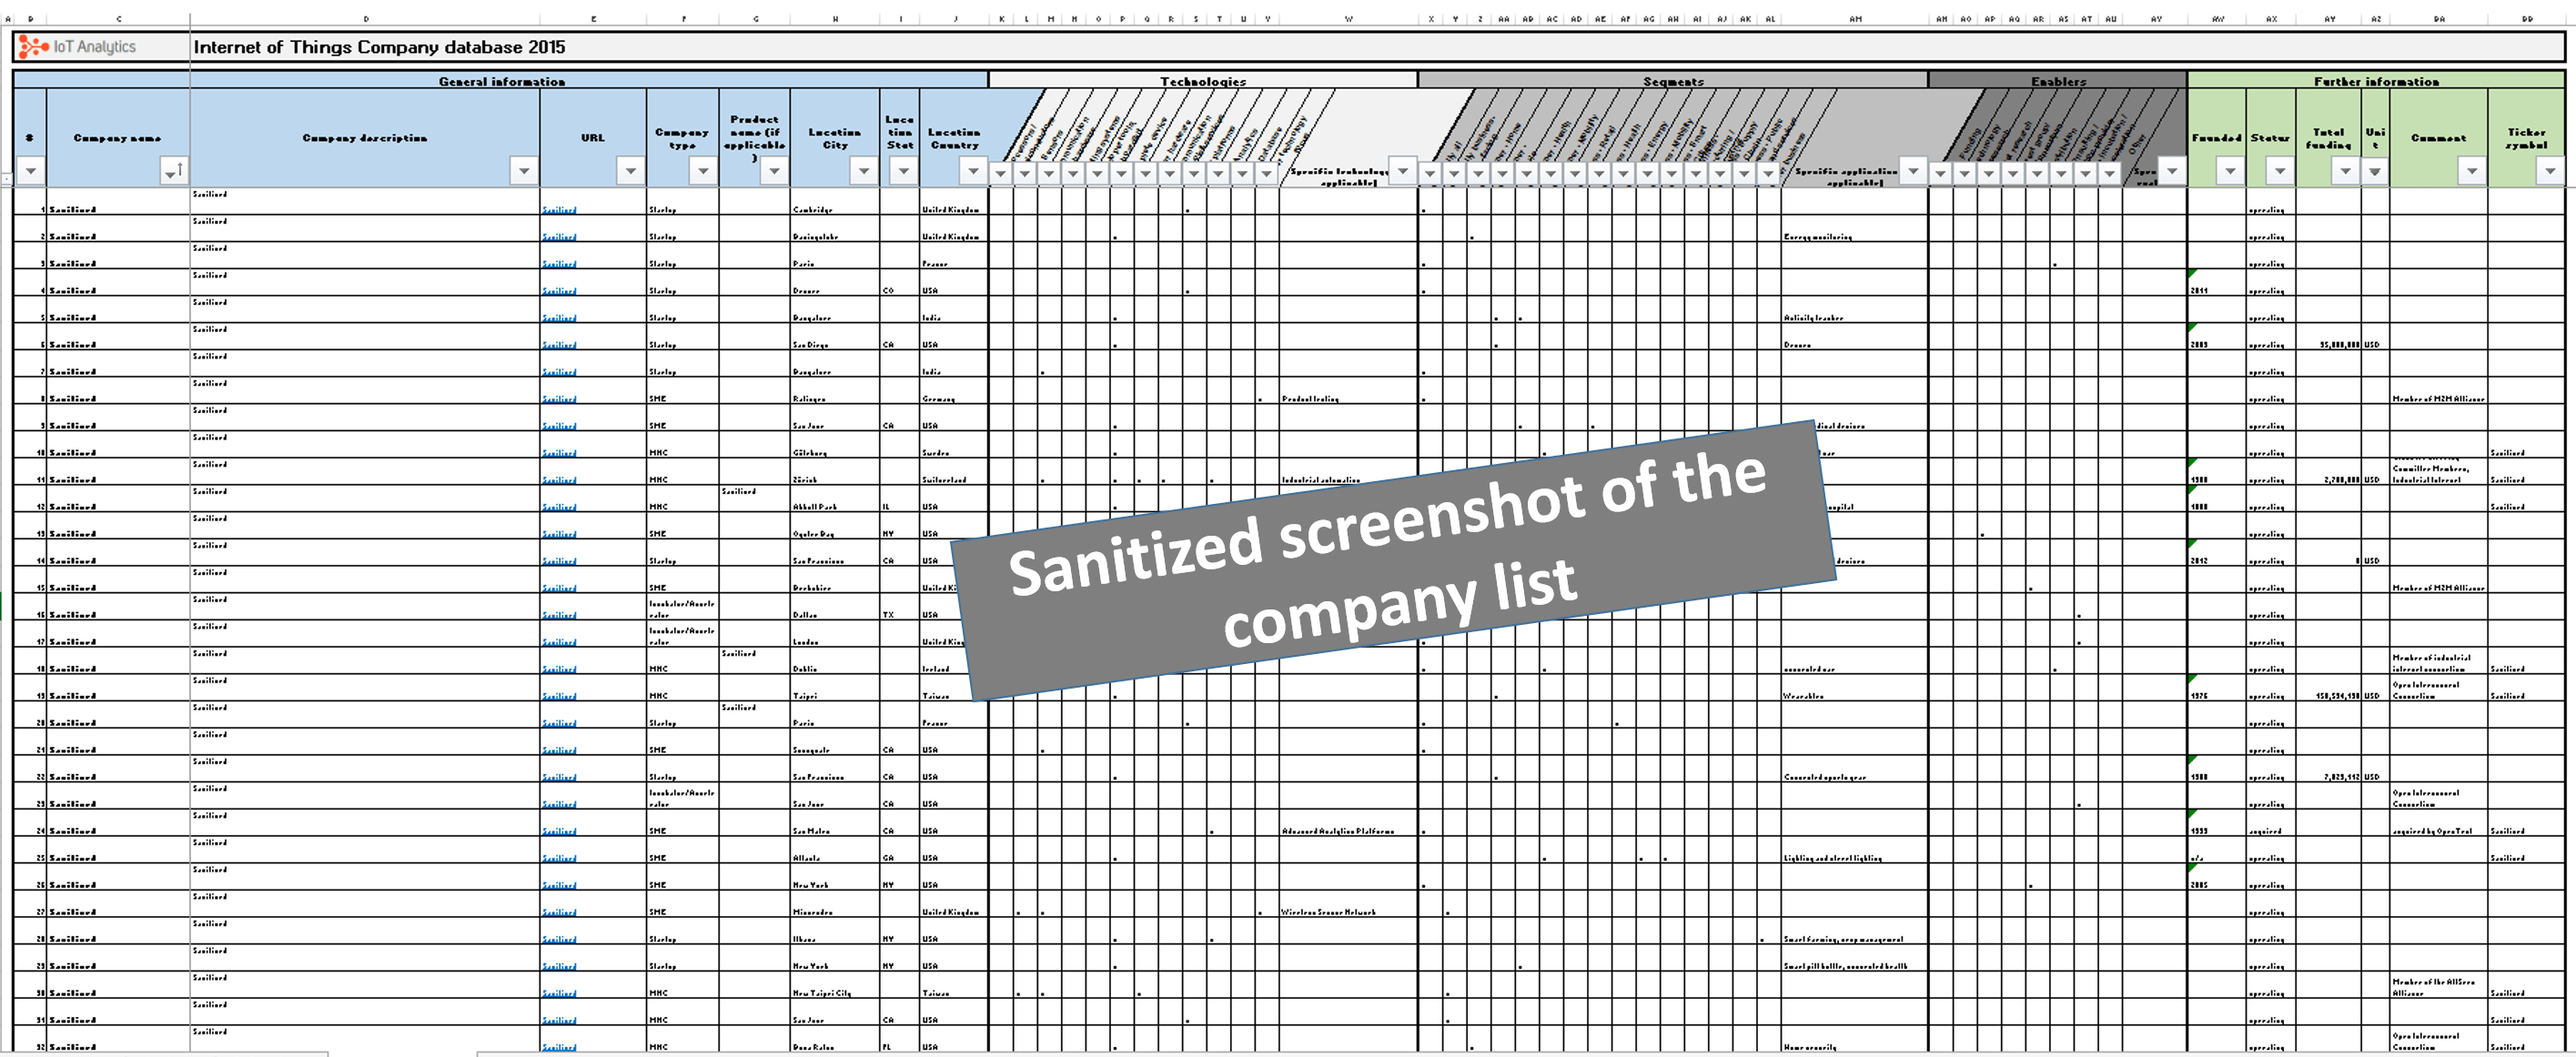 Internet Of Things Company List Preview